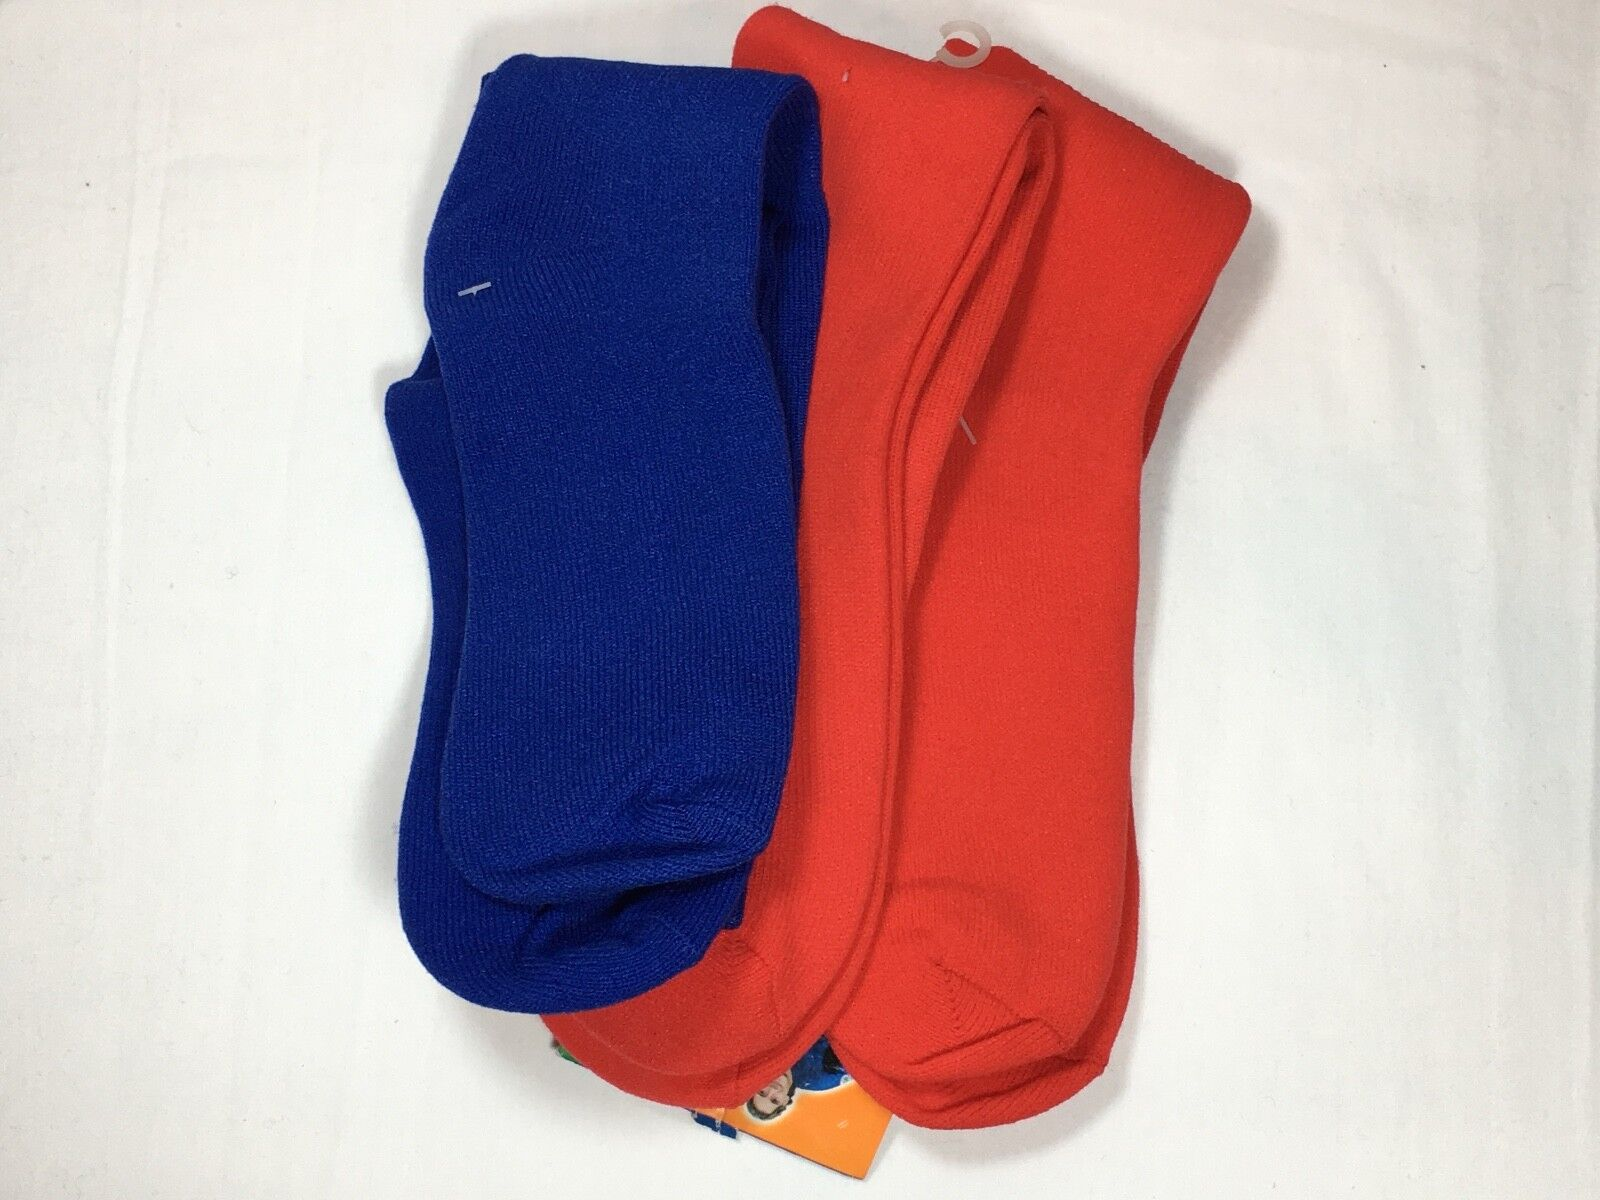 New 2010 Sport Soccer Socks Unisex no Tag 3 Pairs Clothing, Shoes & Accessories